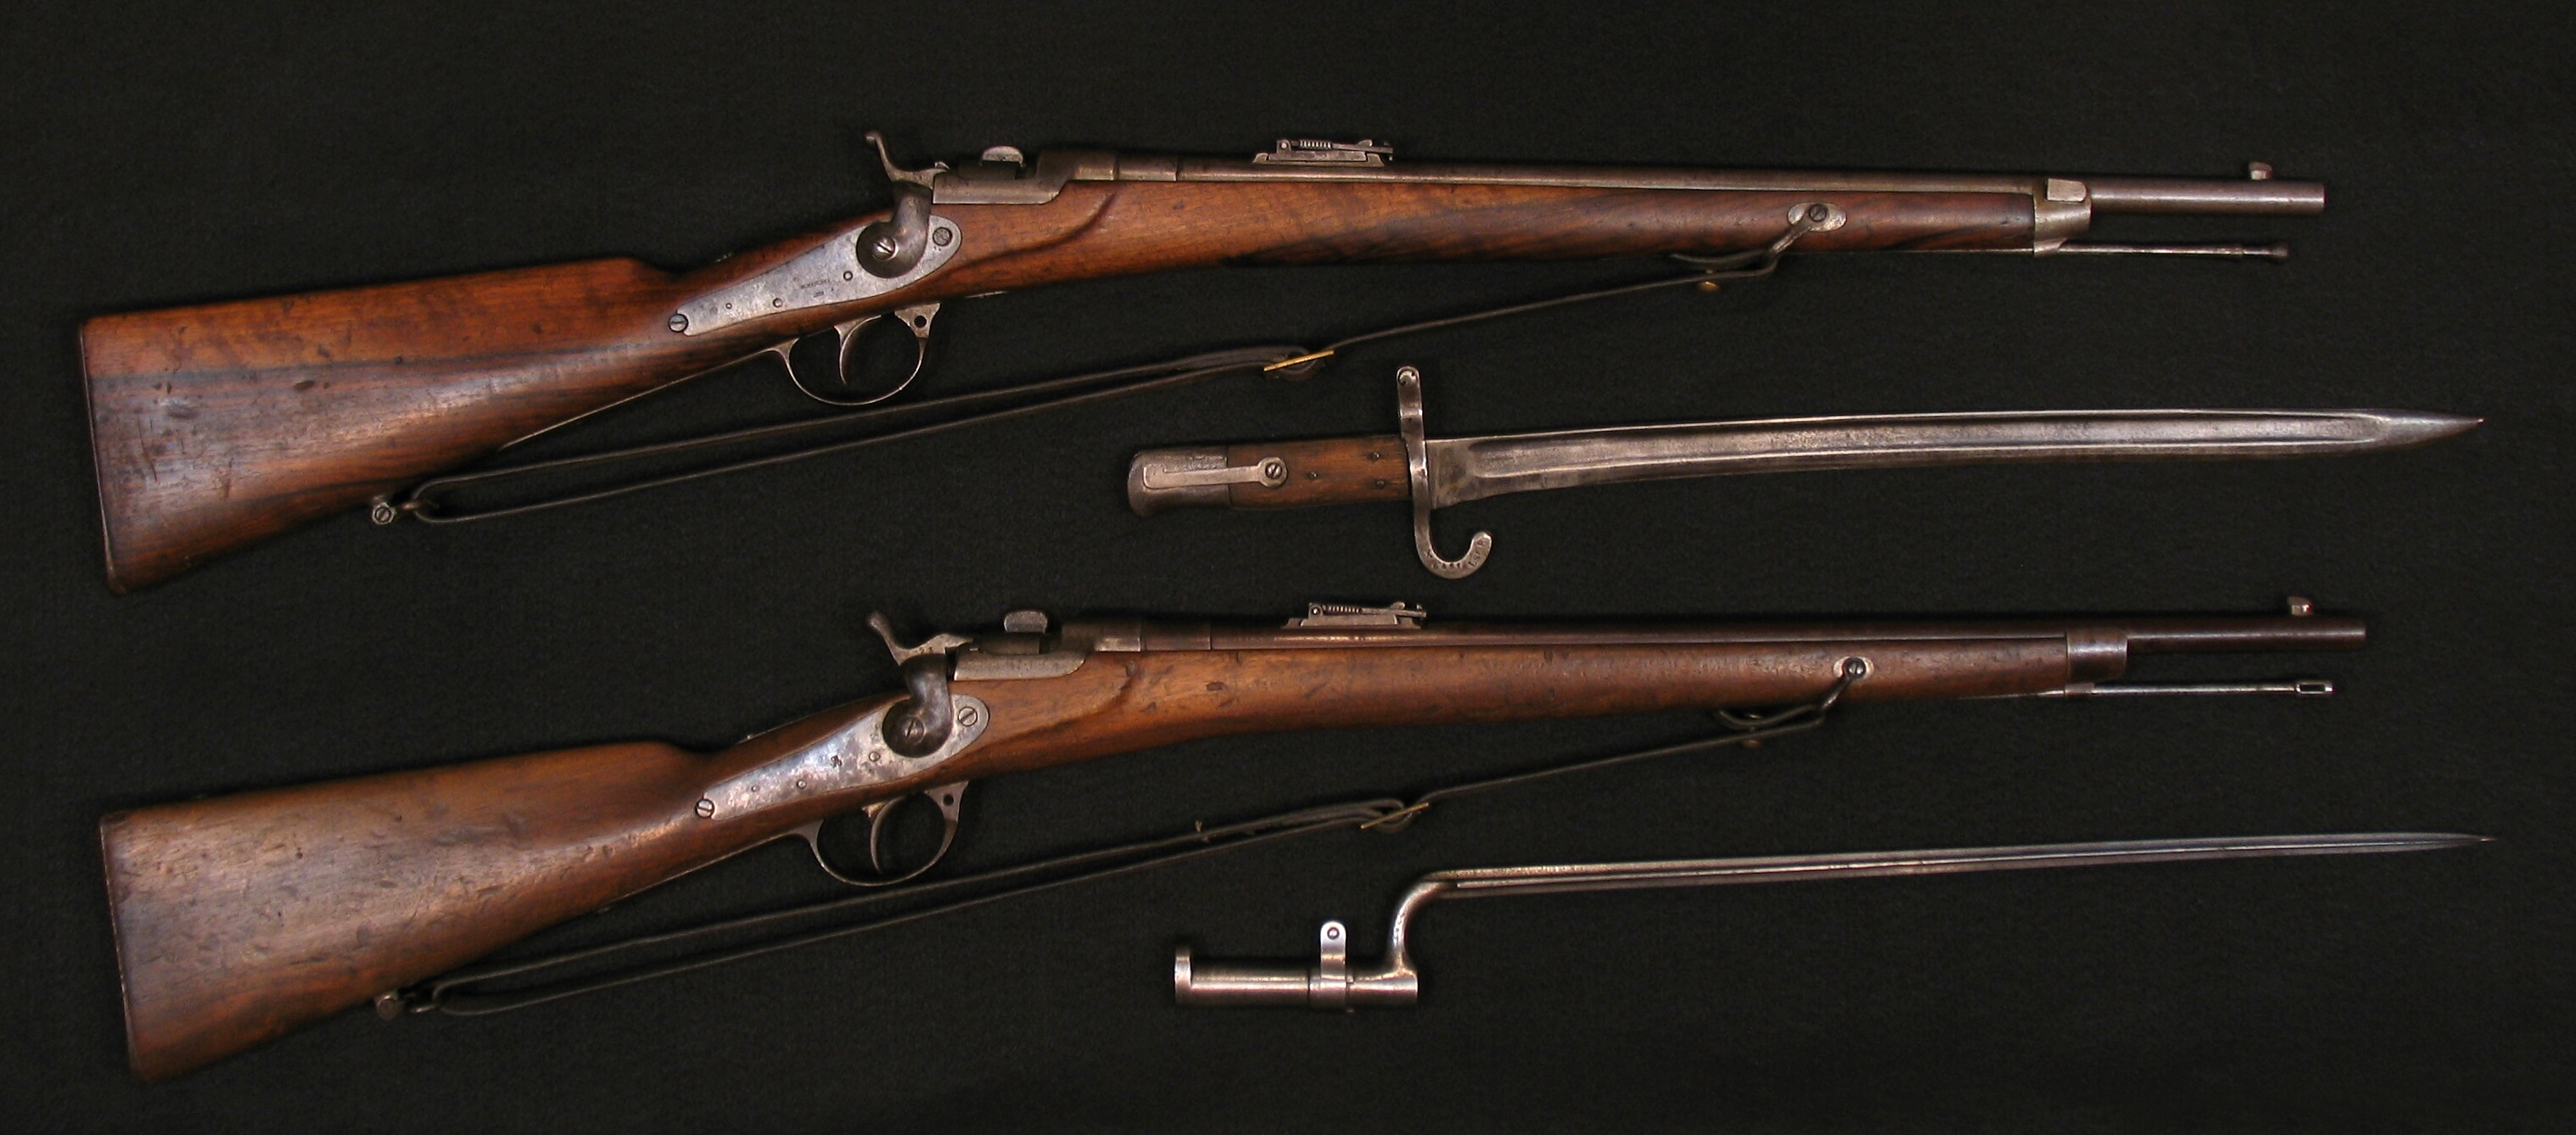 Click image for larger version.  Name:Werndl Carbines 67 E-K-Gew w Bayonets R-3a.jpg Views:2 Size:2.27 MB ID:3708383